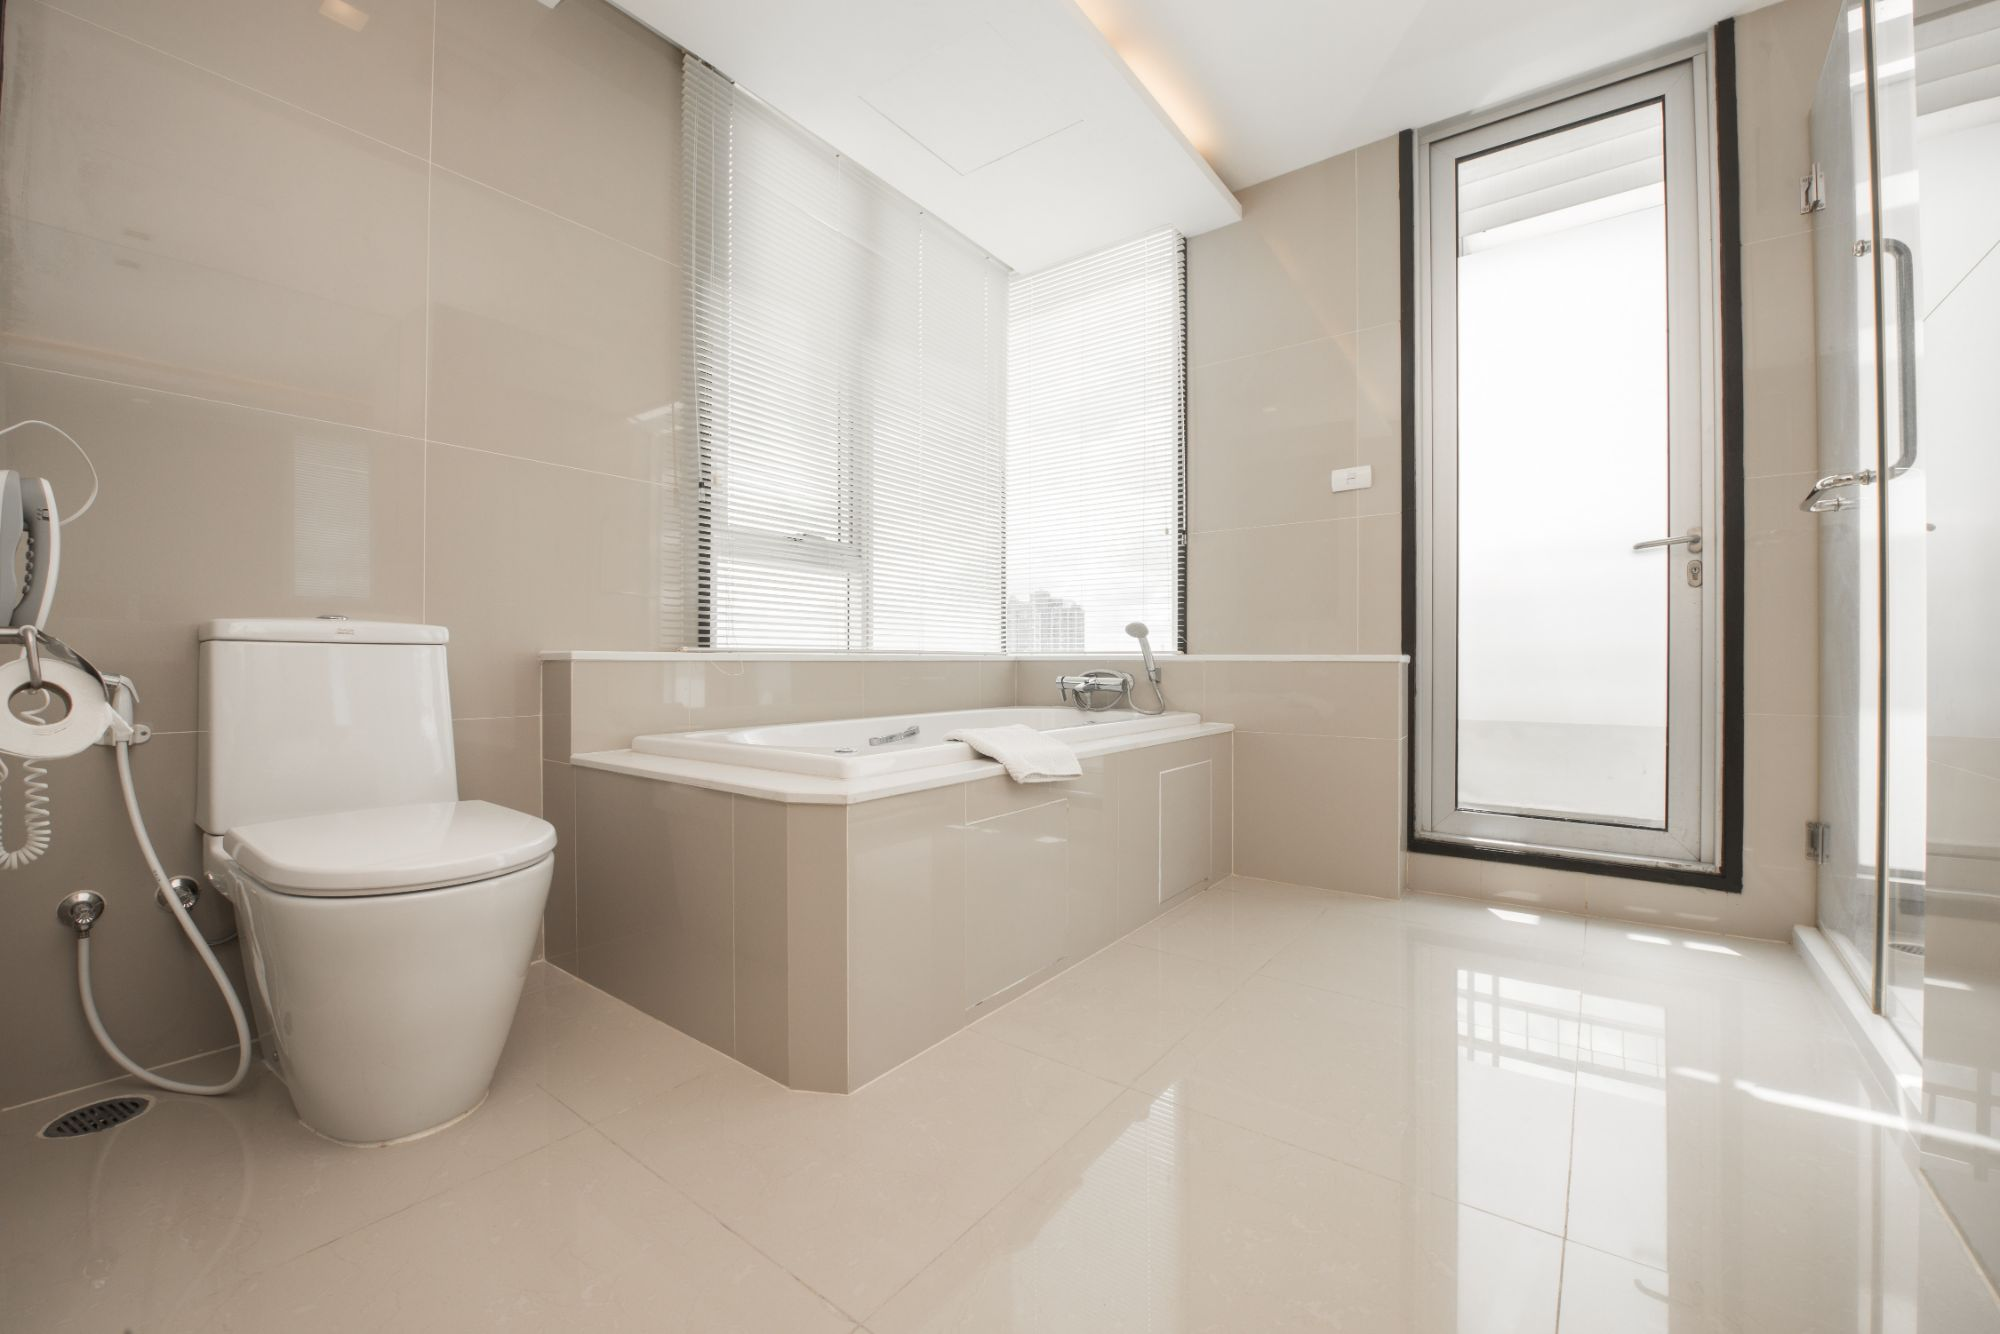 Bathroom and Toilet Renovations Specialists Mandurah and Perth